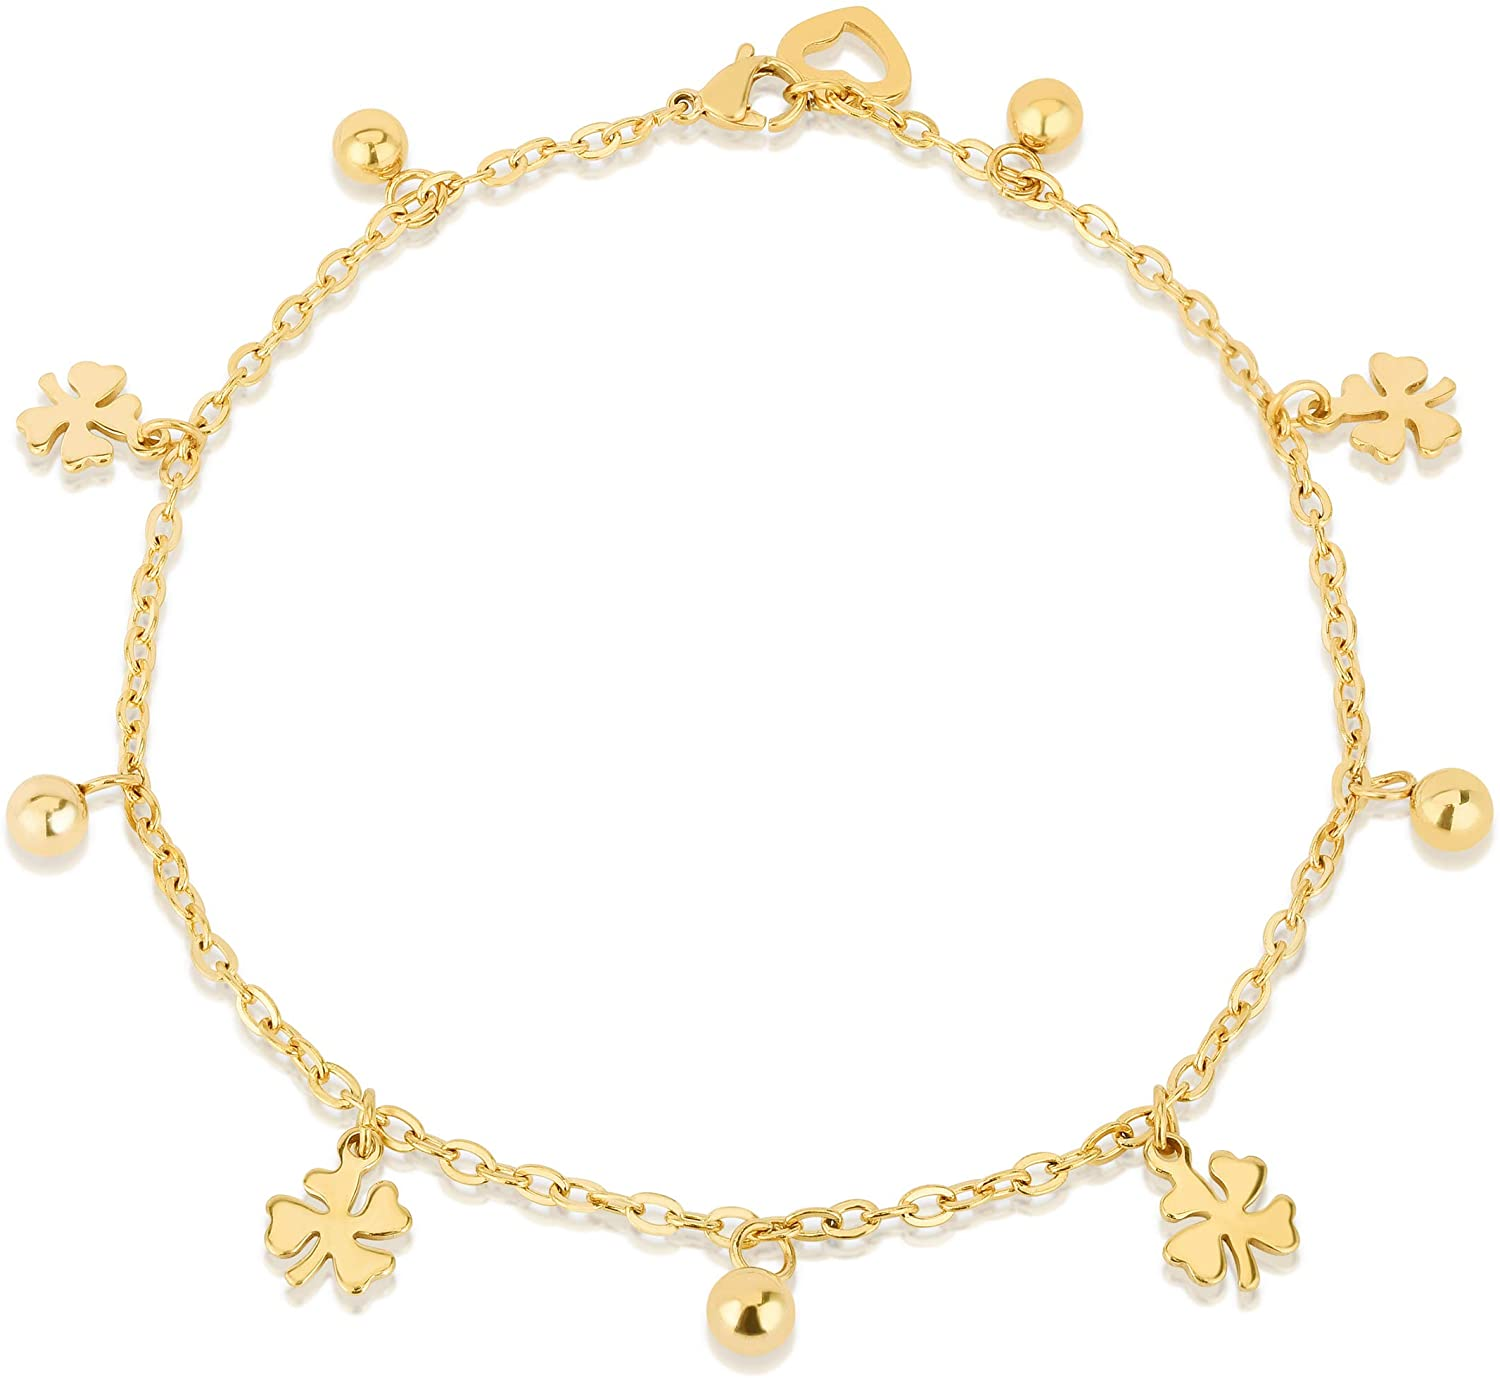 Verona Jewelers 14K Gold Plated Stainless Steel Charm Anklets for Women Girls, Dainty Foot Jewelry, Fashion Accessories and Gadgets, Summer Beach 10 Inch Ankle Bracelets, Cute Chain Link Anklet